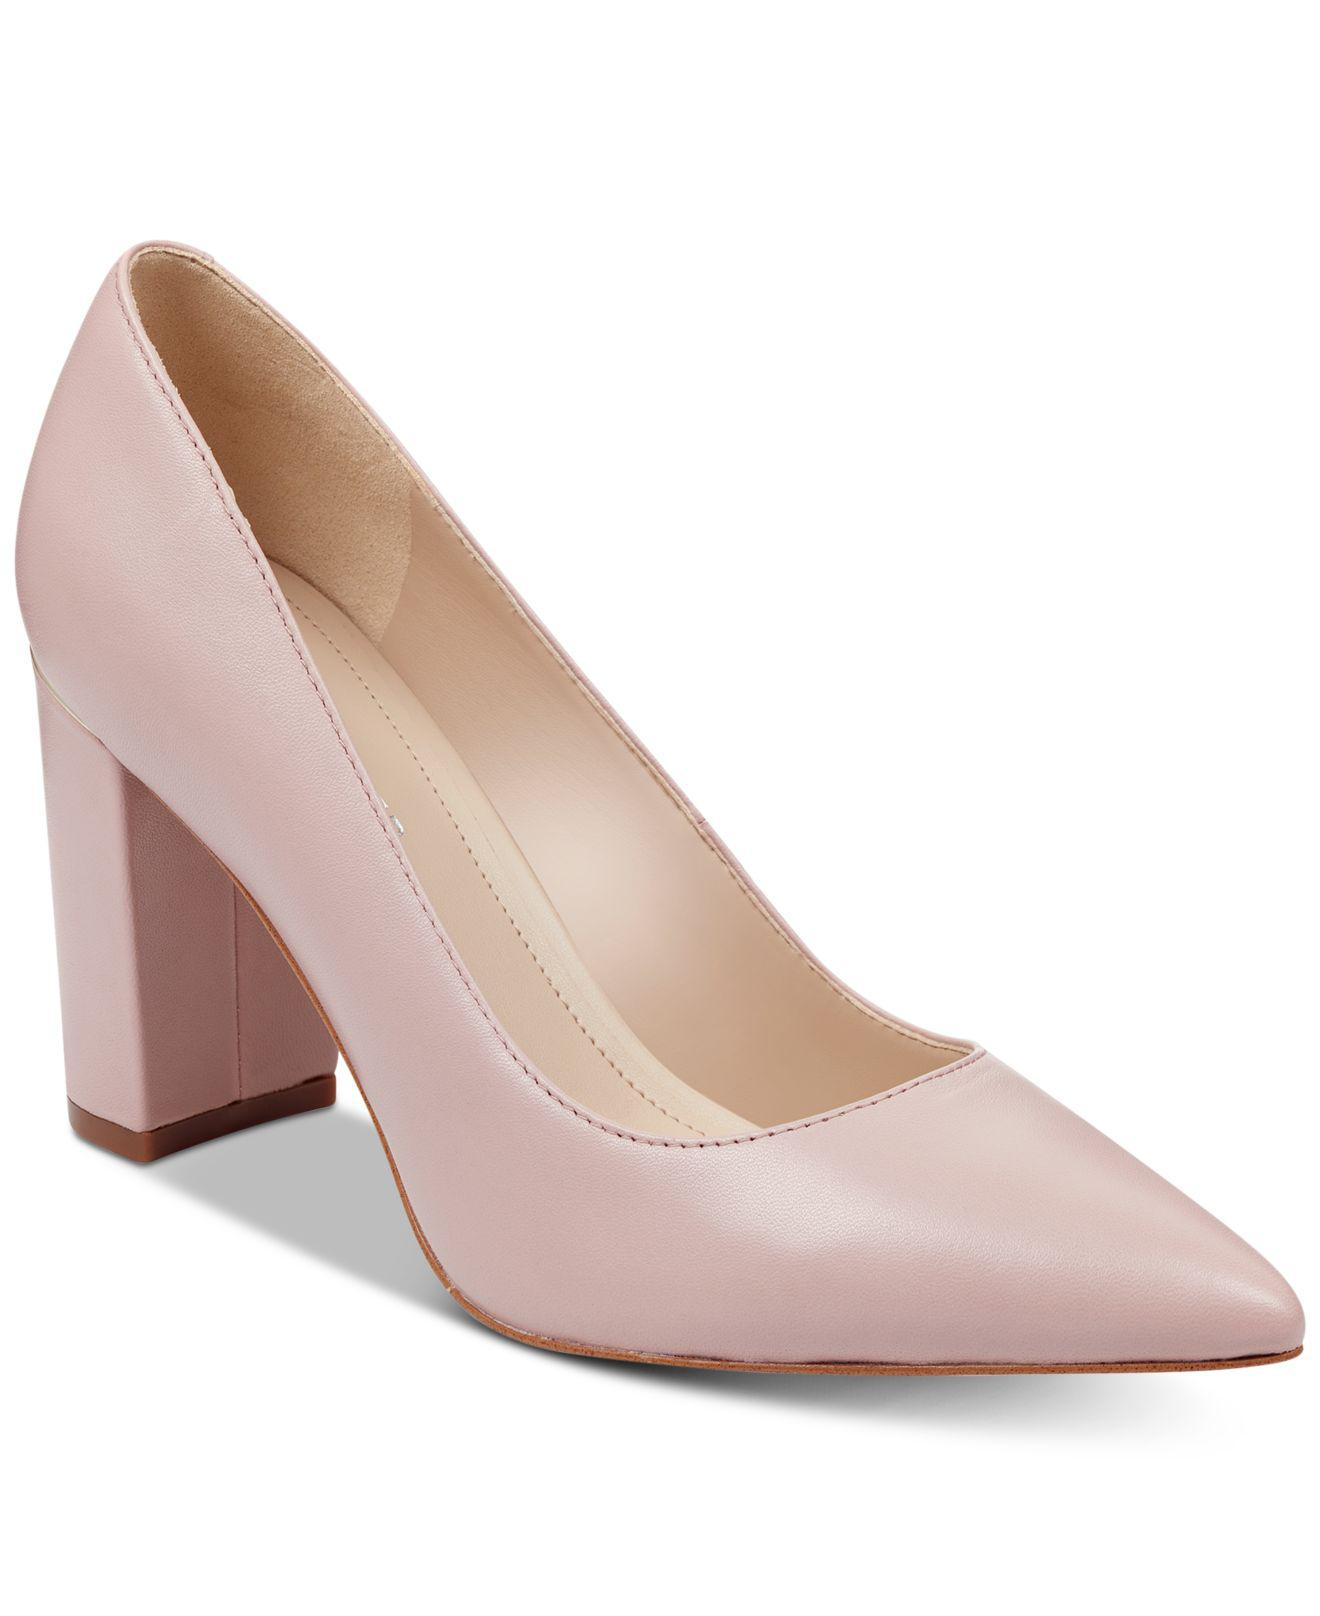 c3a3e65f472 Marc Fisher - Pink Viviene Block-heel Pumps - Lyst. View fullscreen